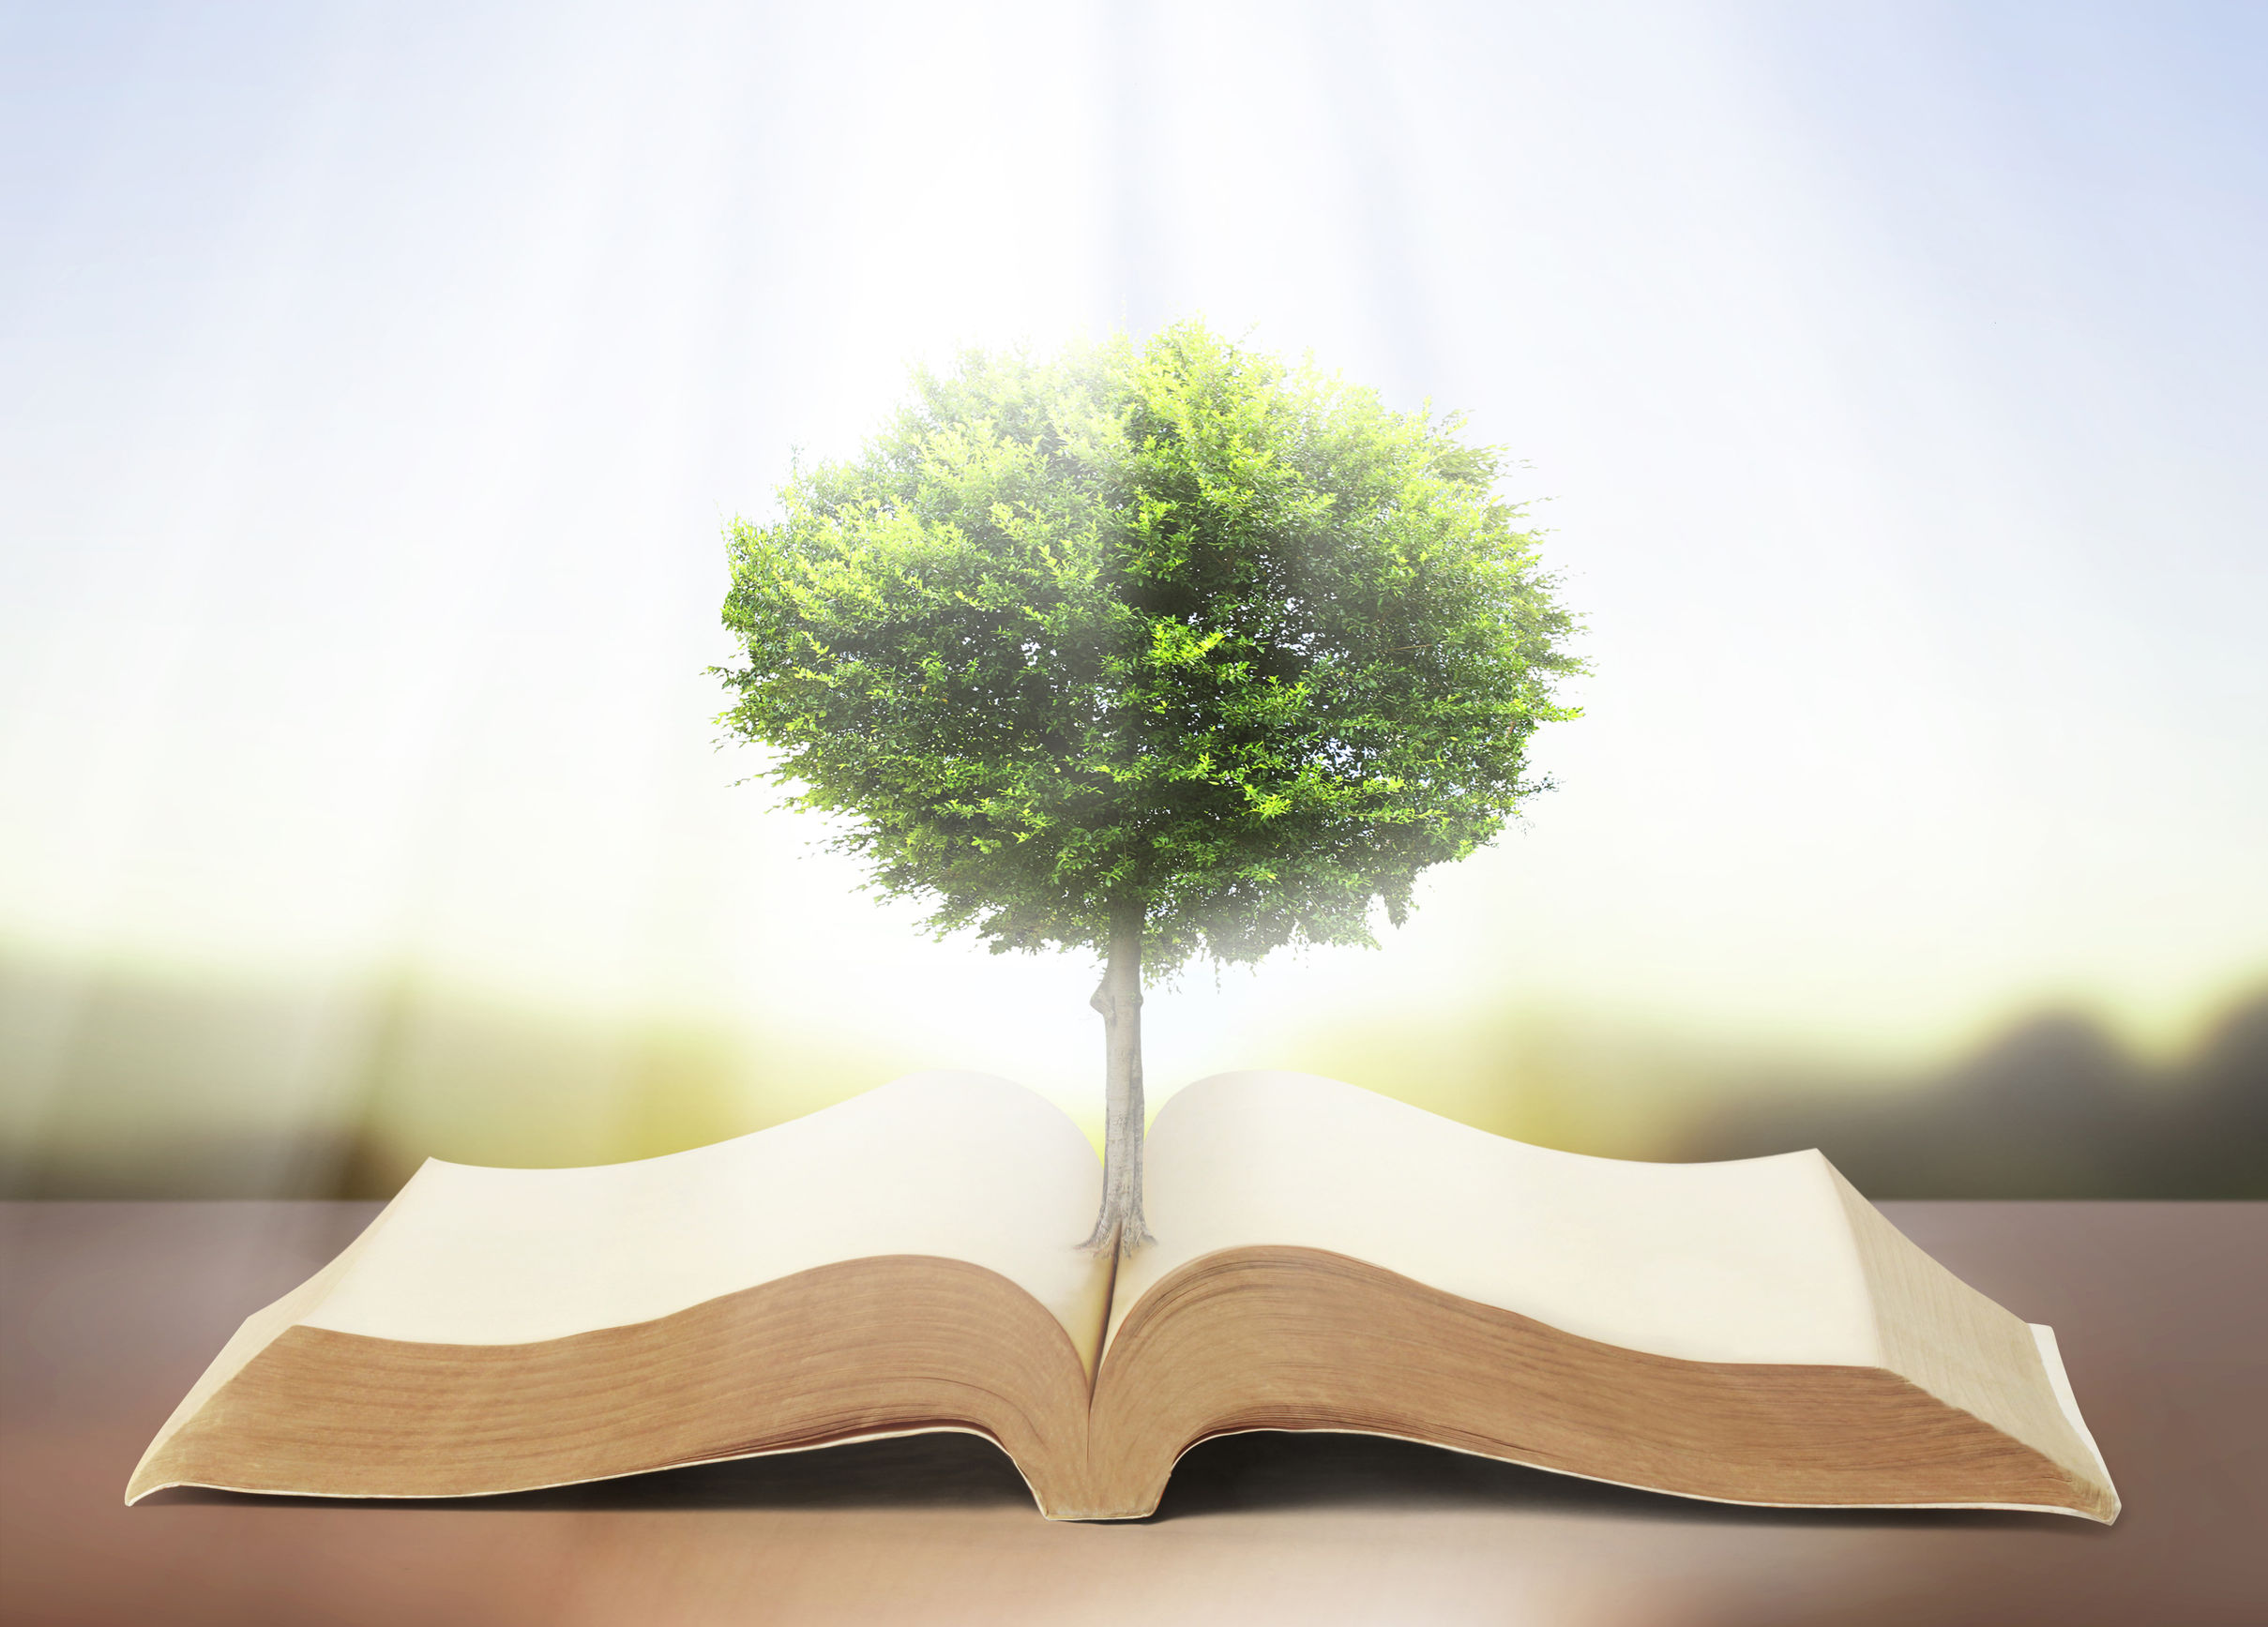 25167392 - book of nature with grass and tree growth